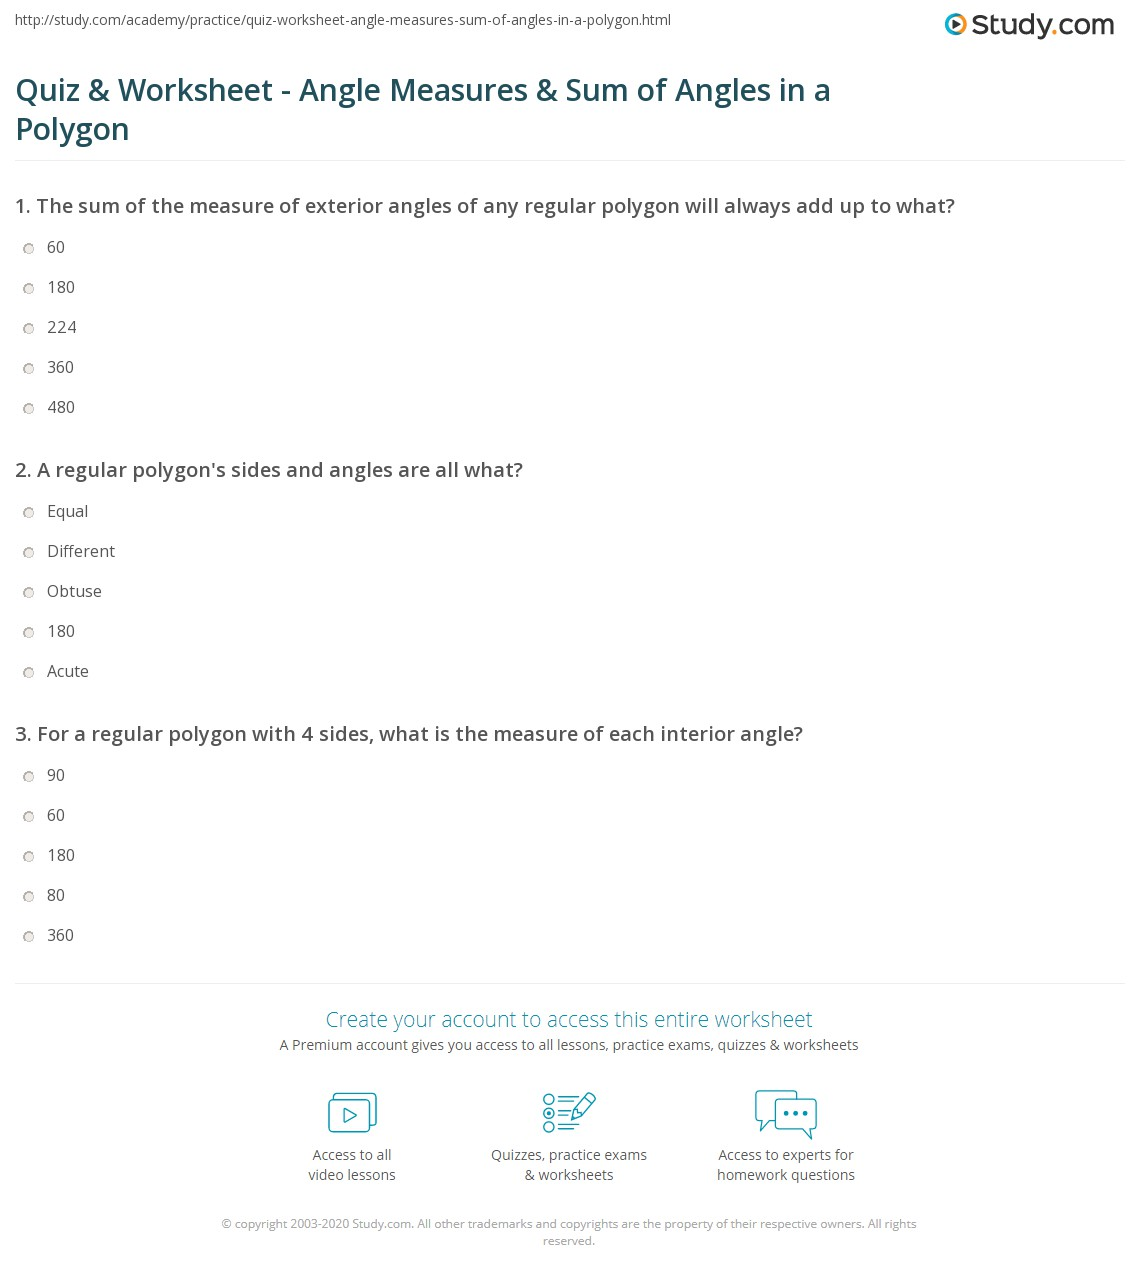 Worksheets Interior Angles Of A Polygon Worksheet quiz worksheet angle measures sum of angles in a polygon print how to measure the find worksheet